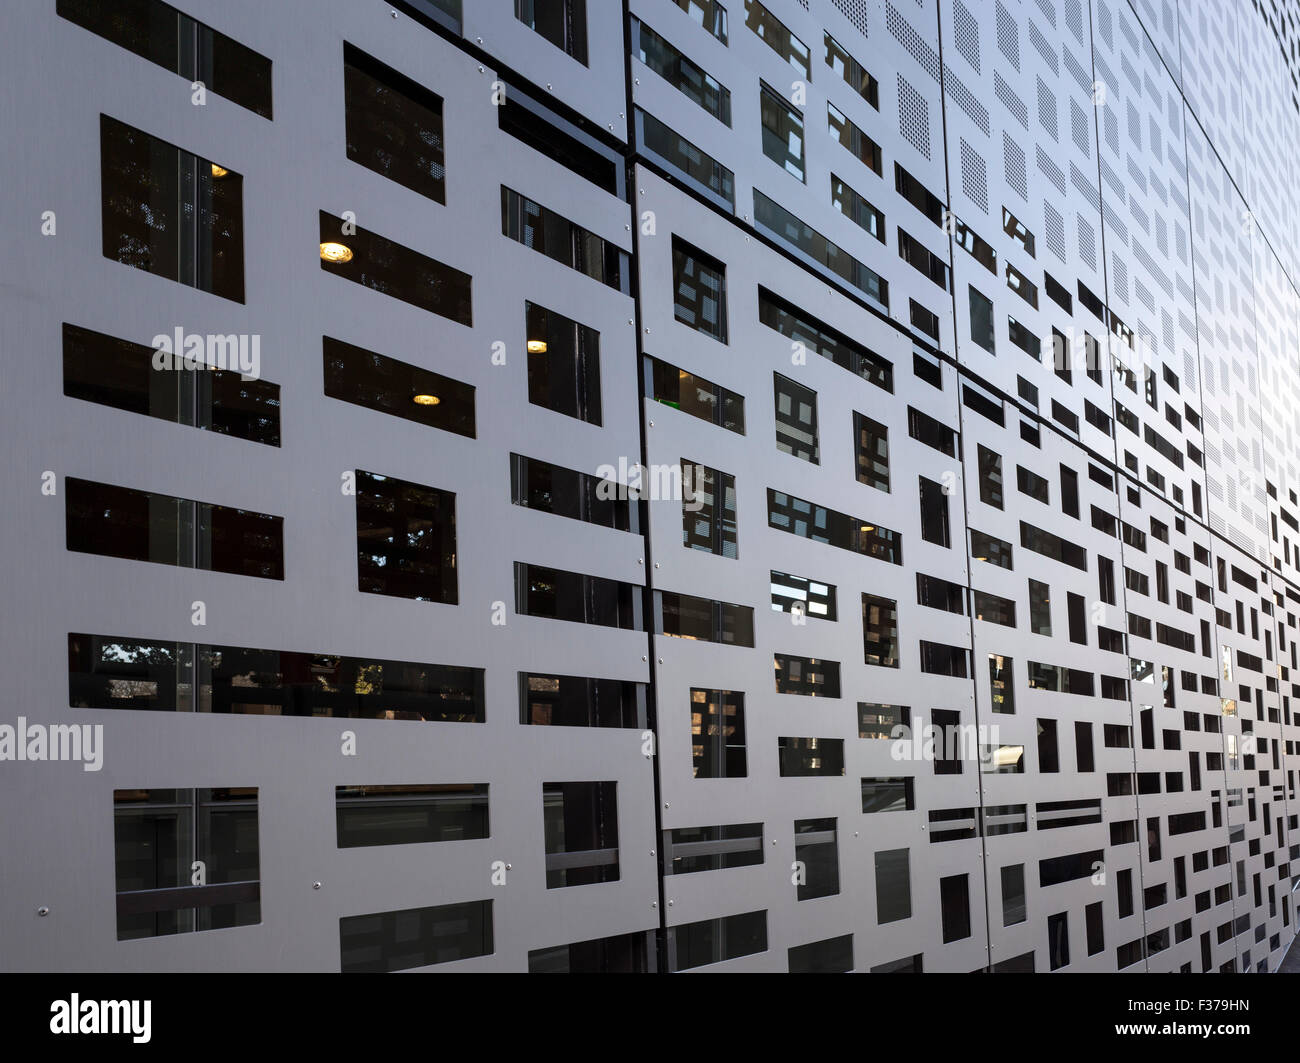 Detail of perforated screen. Faculty of Engineering + Information Technology, University of Technology Sydney, Sydney, - Stock Image